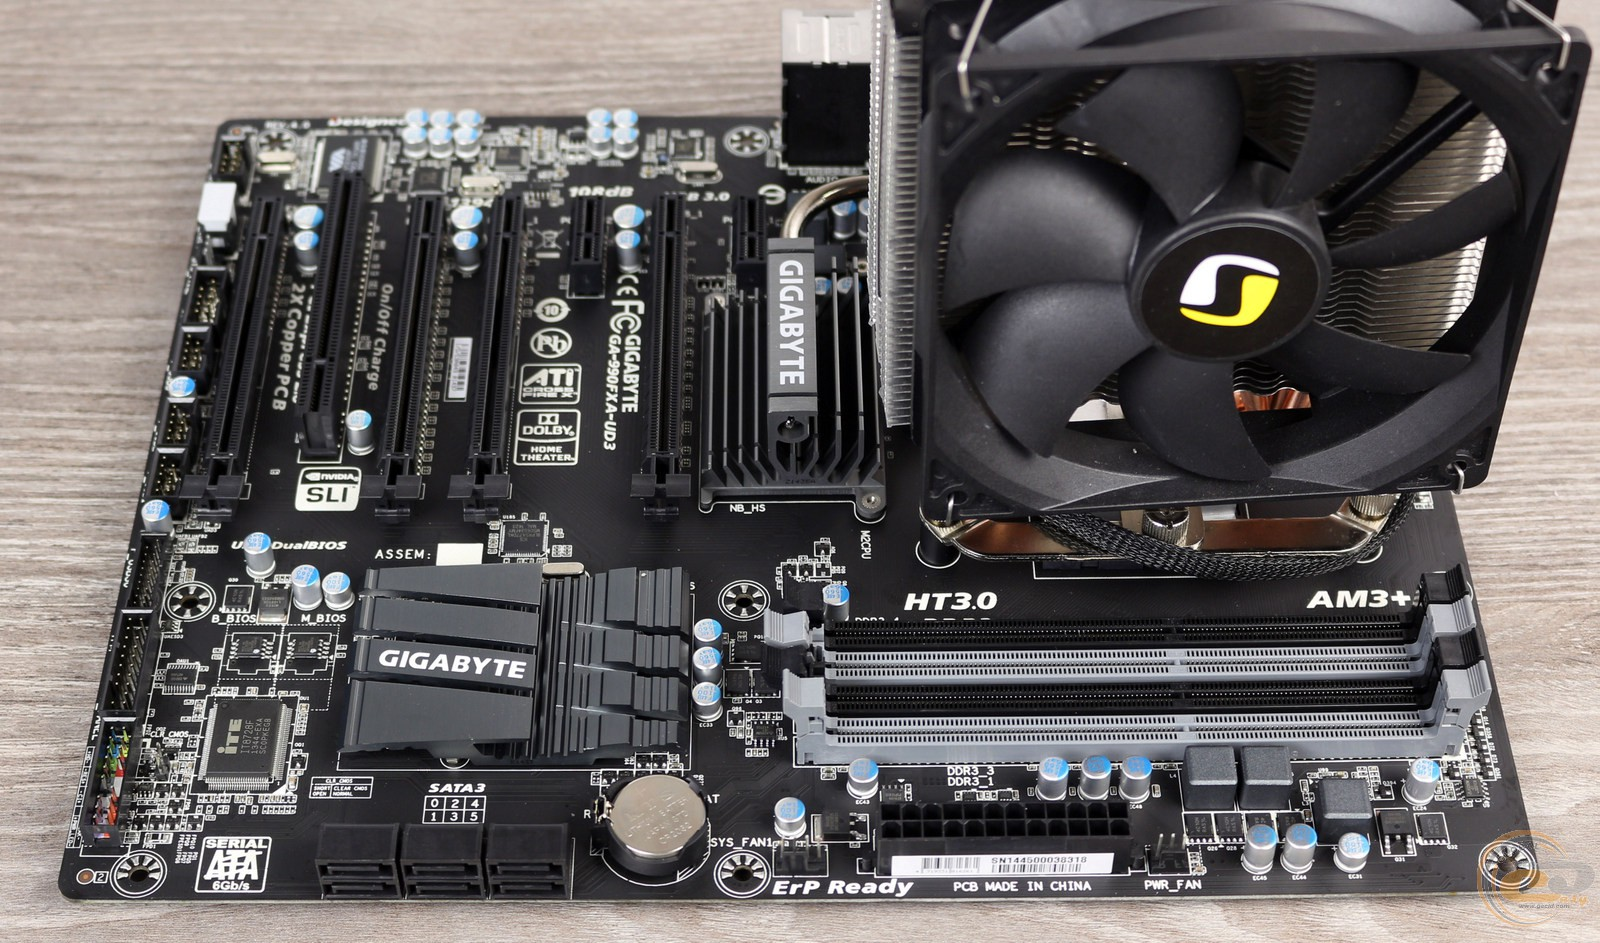 GECID.com: Motherboard GIGABYTE GA-990FXA-UD3: review and